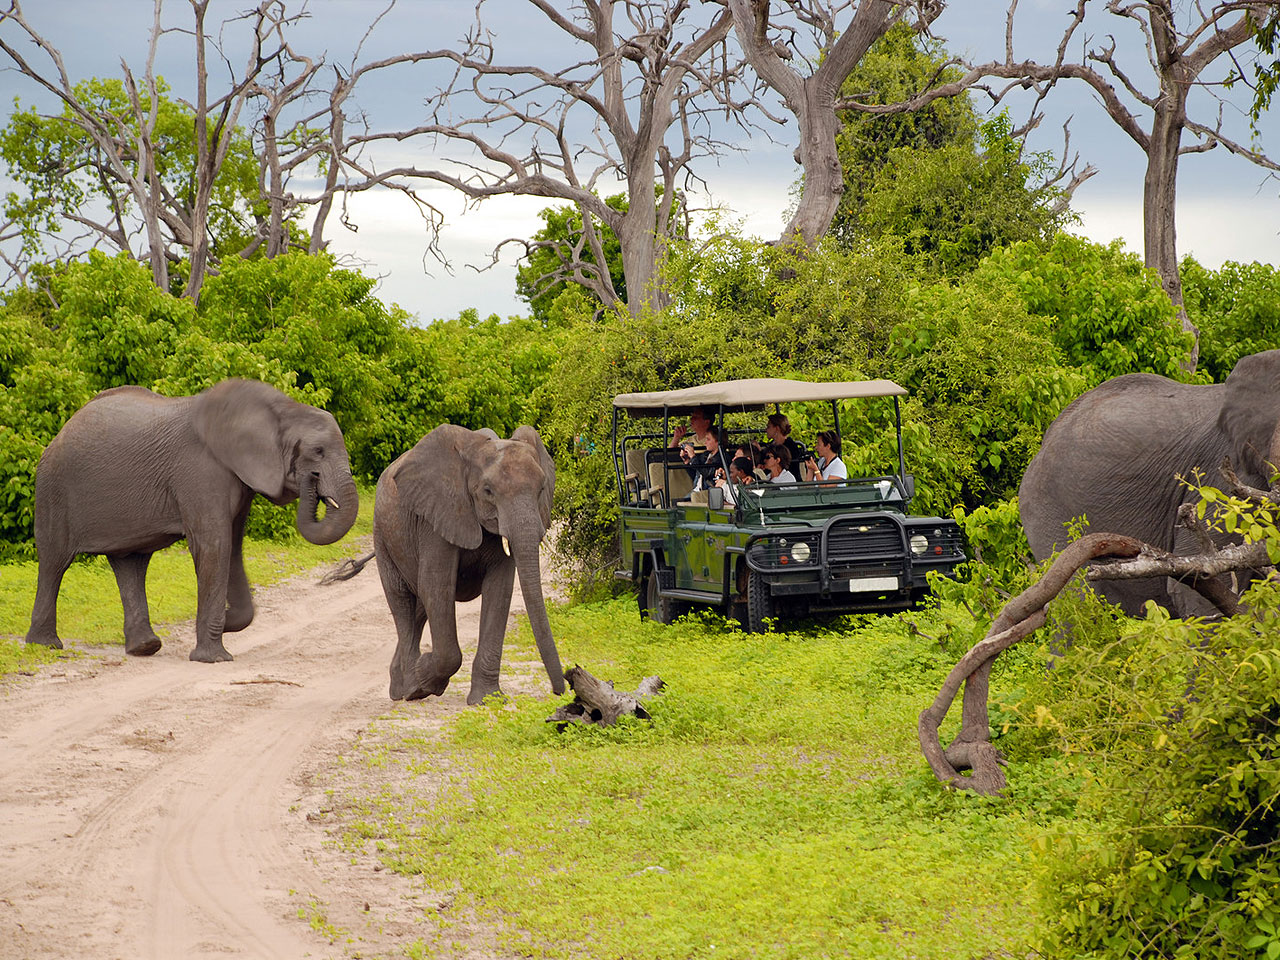 Elephants crossing a dirt road infront of an open safari vehicle of tourists in the bush.